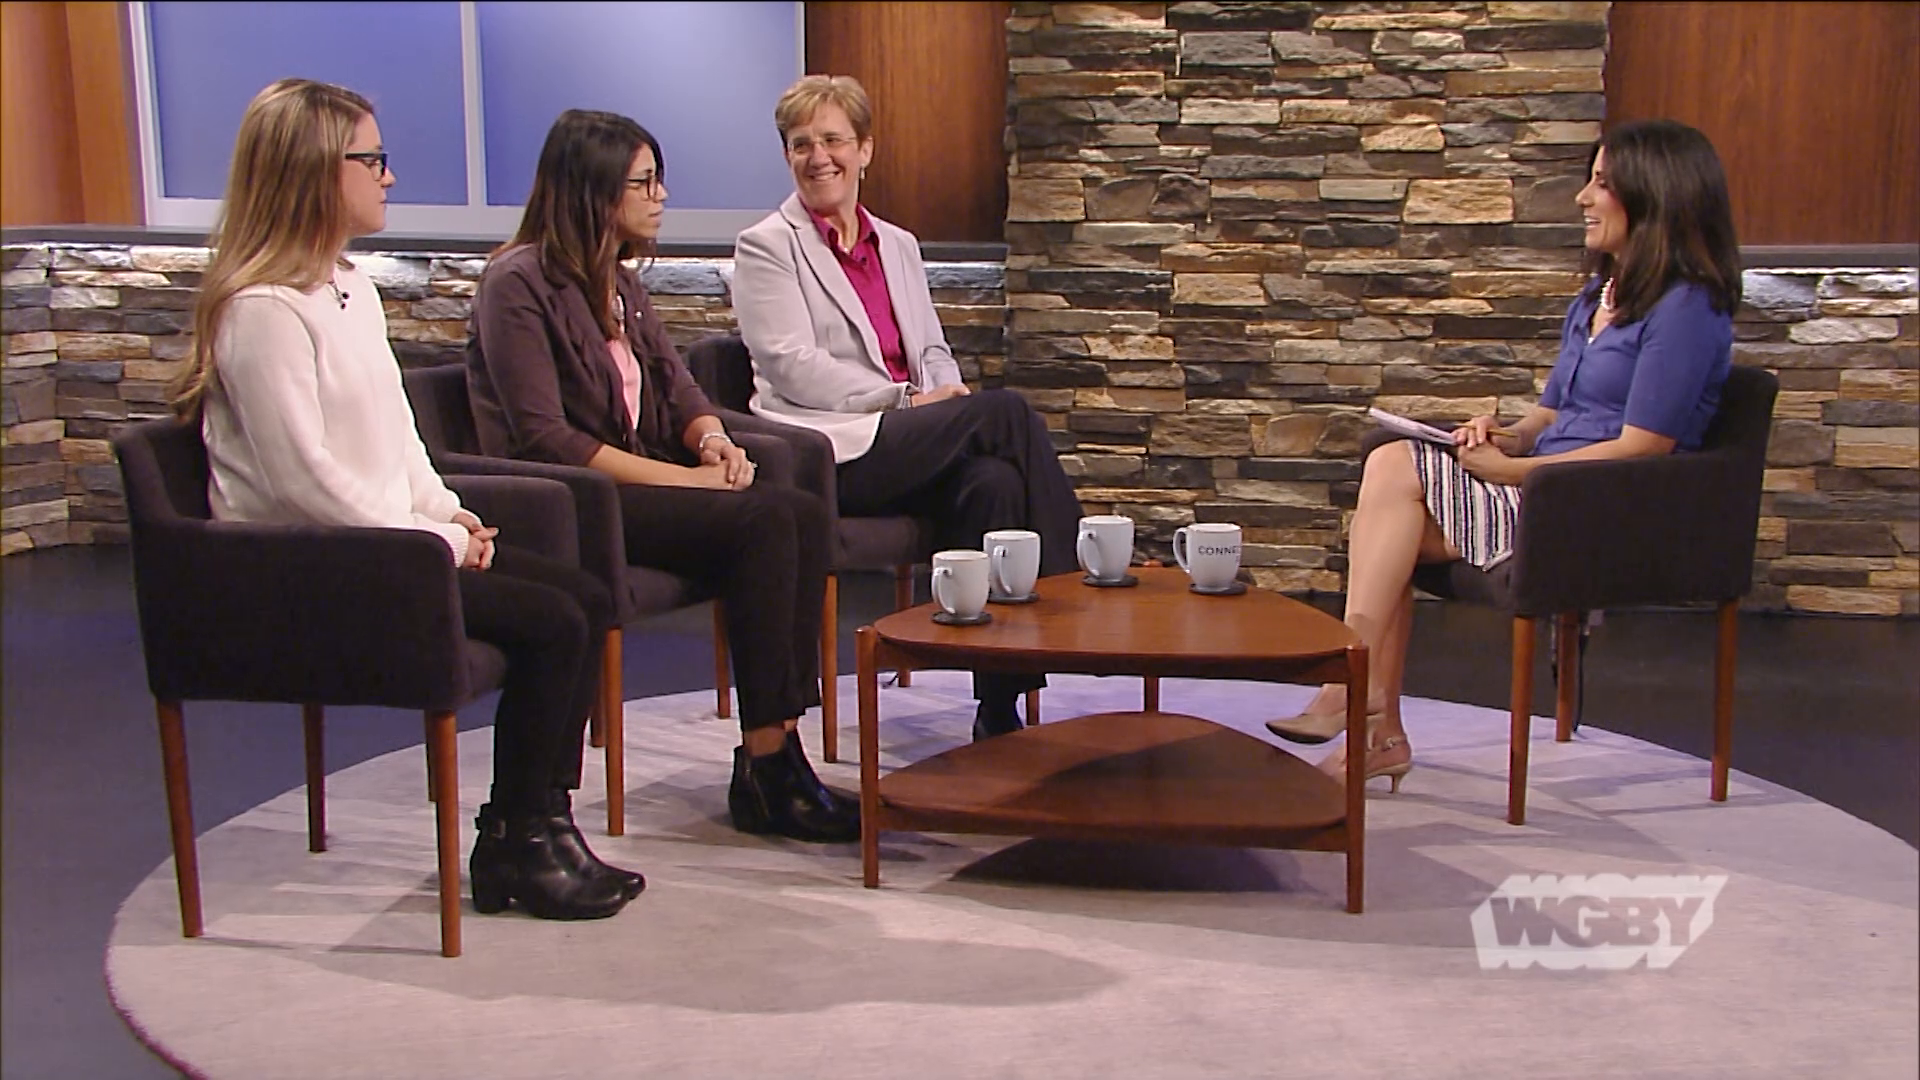 Bay Path's Dr. Andrea Hickson-Martin & two western Mass teachers discuss the challenges & rewards of working with disruptive students in the classroom.